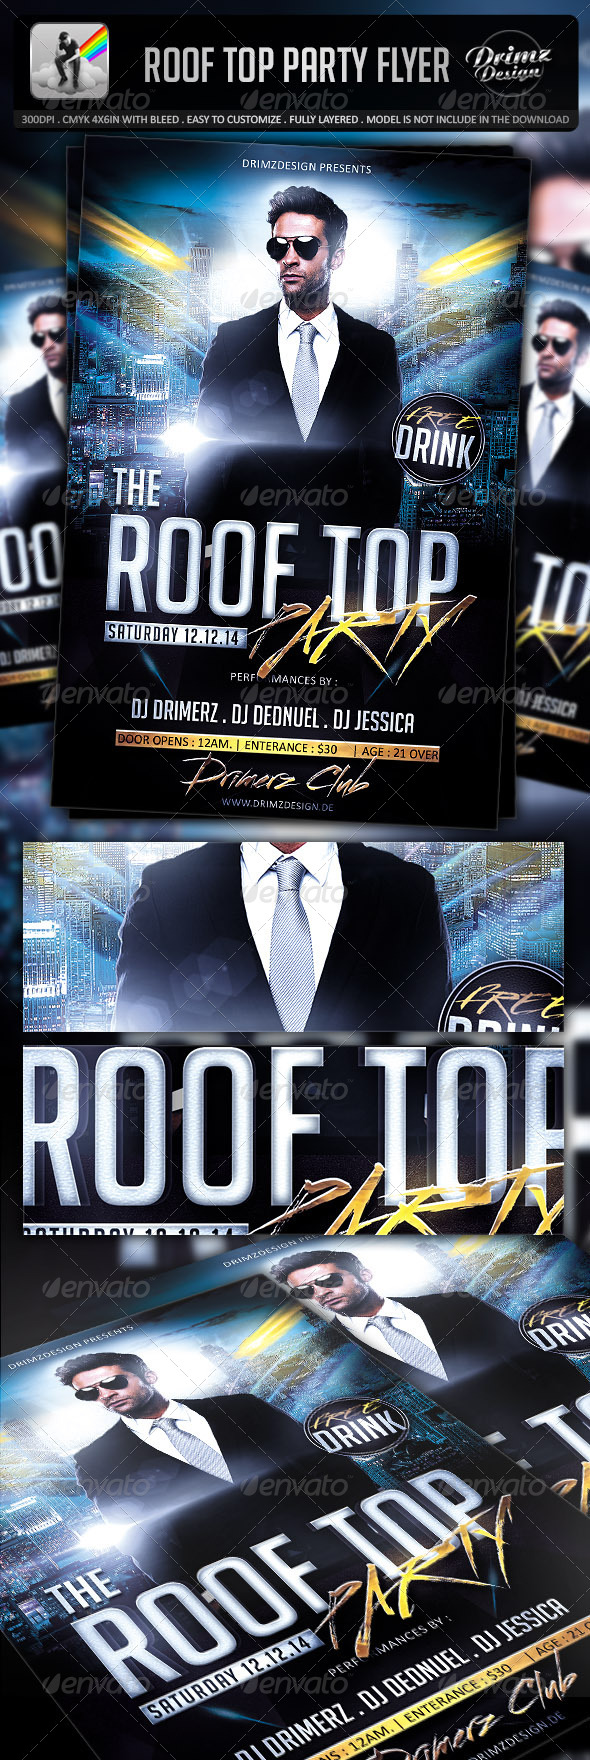 Roof Top Party Flyer - Clubs & Parties Events